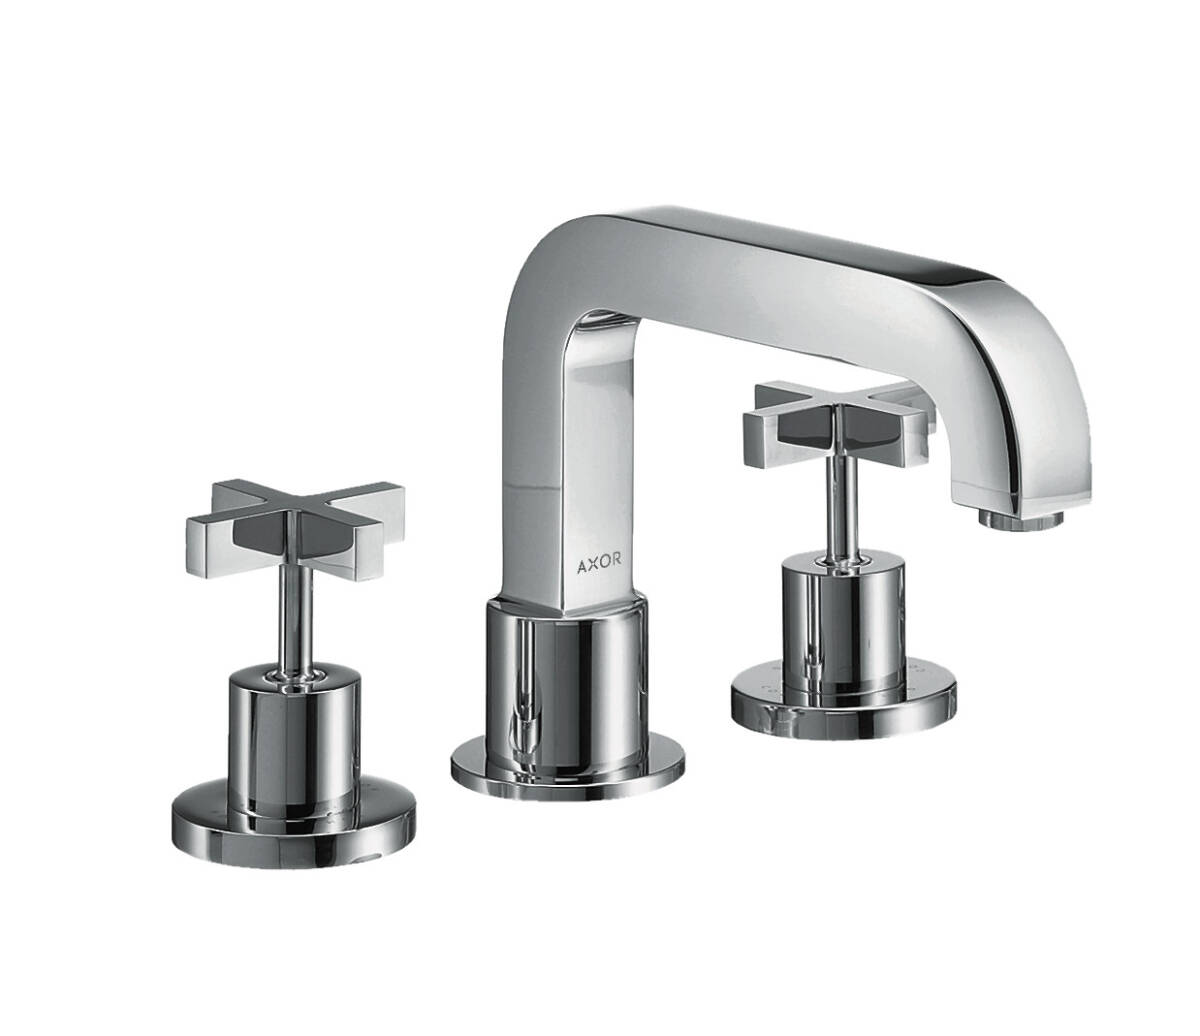 3-hole rim mounted bath mixer with cross handles, Polished Gold Optic, 39436990